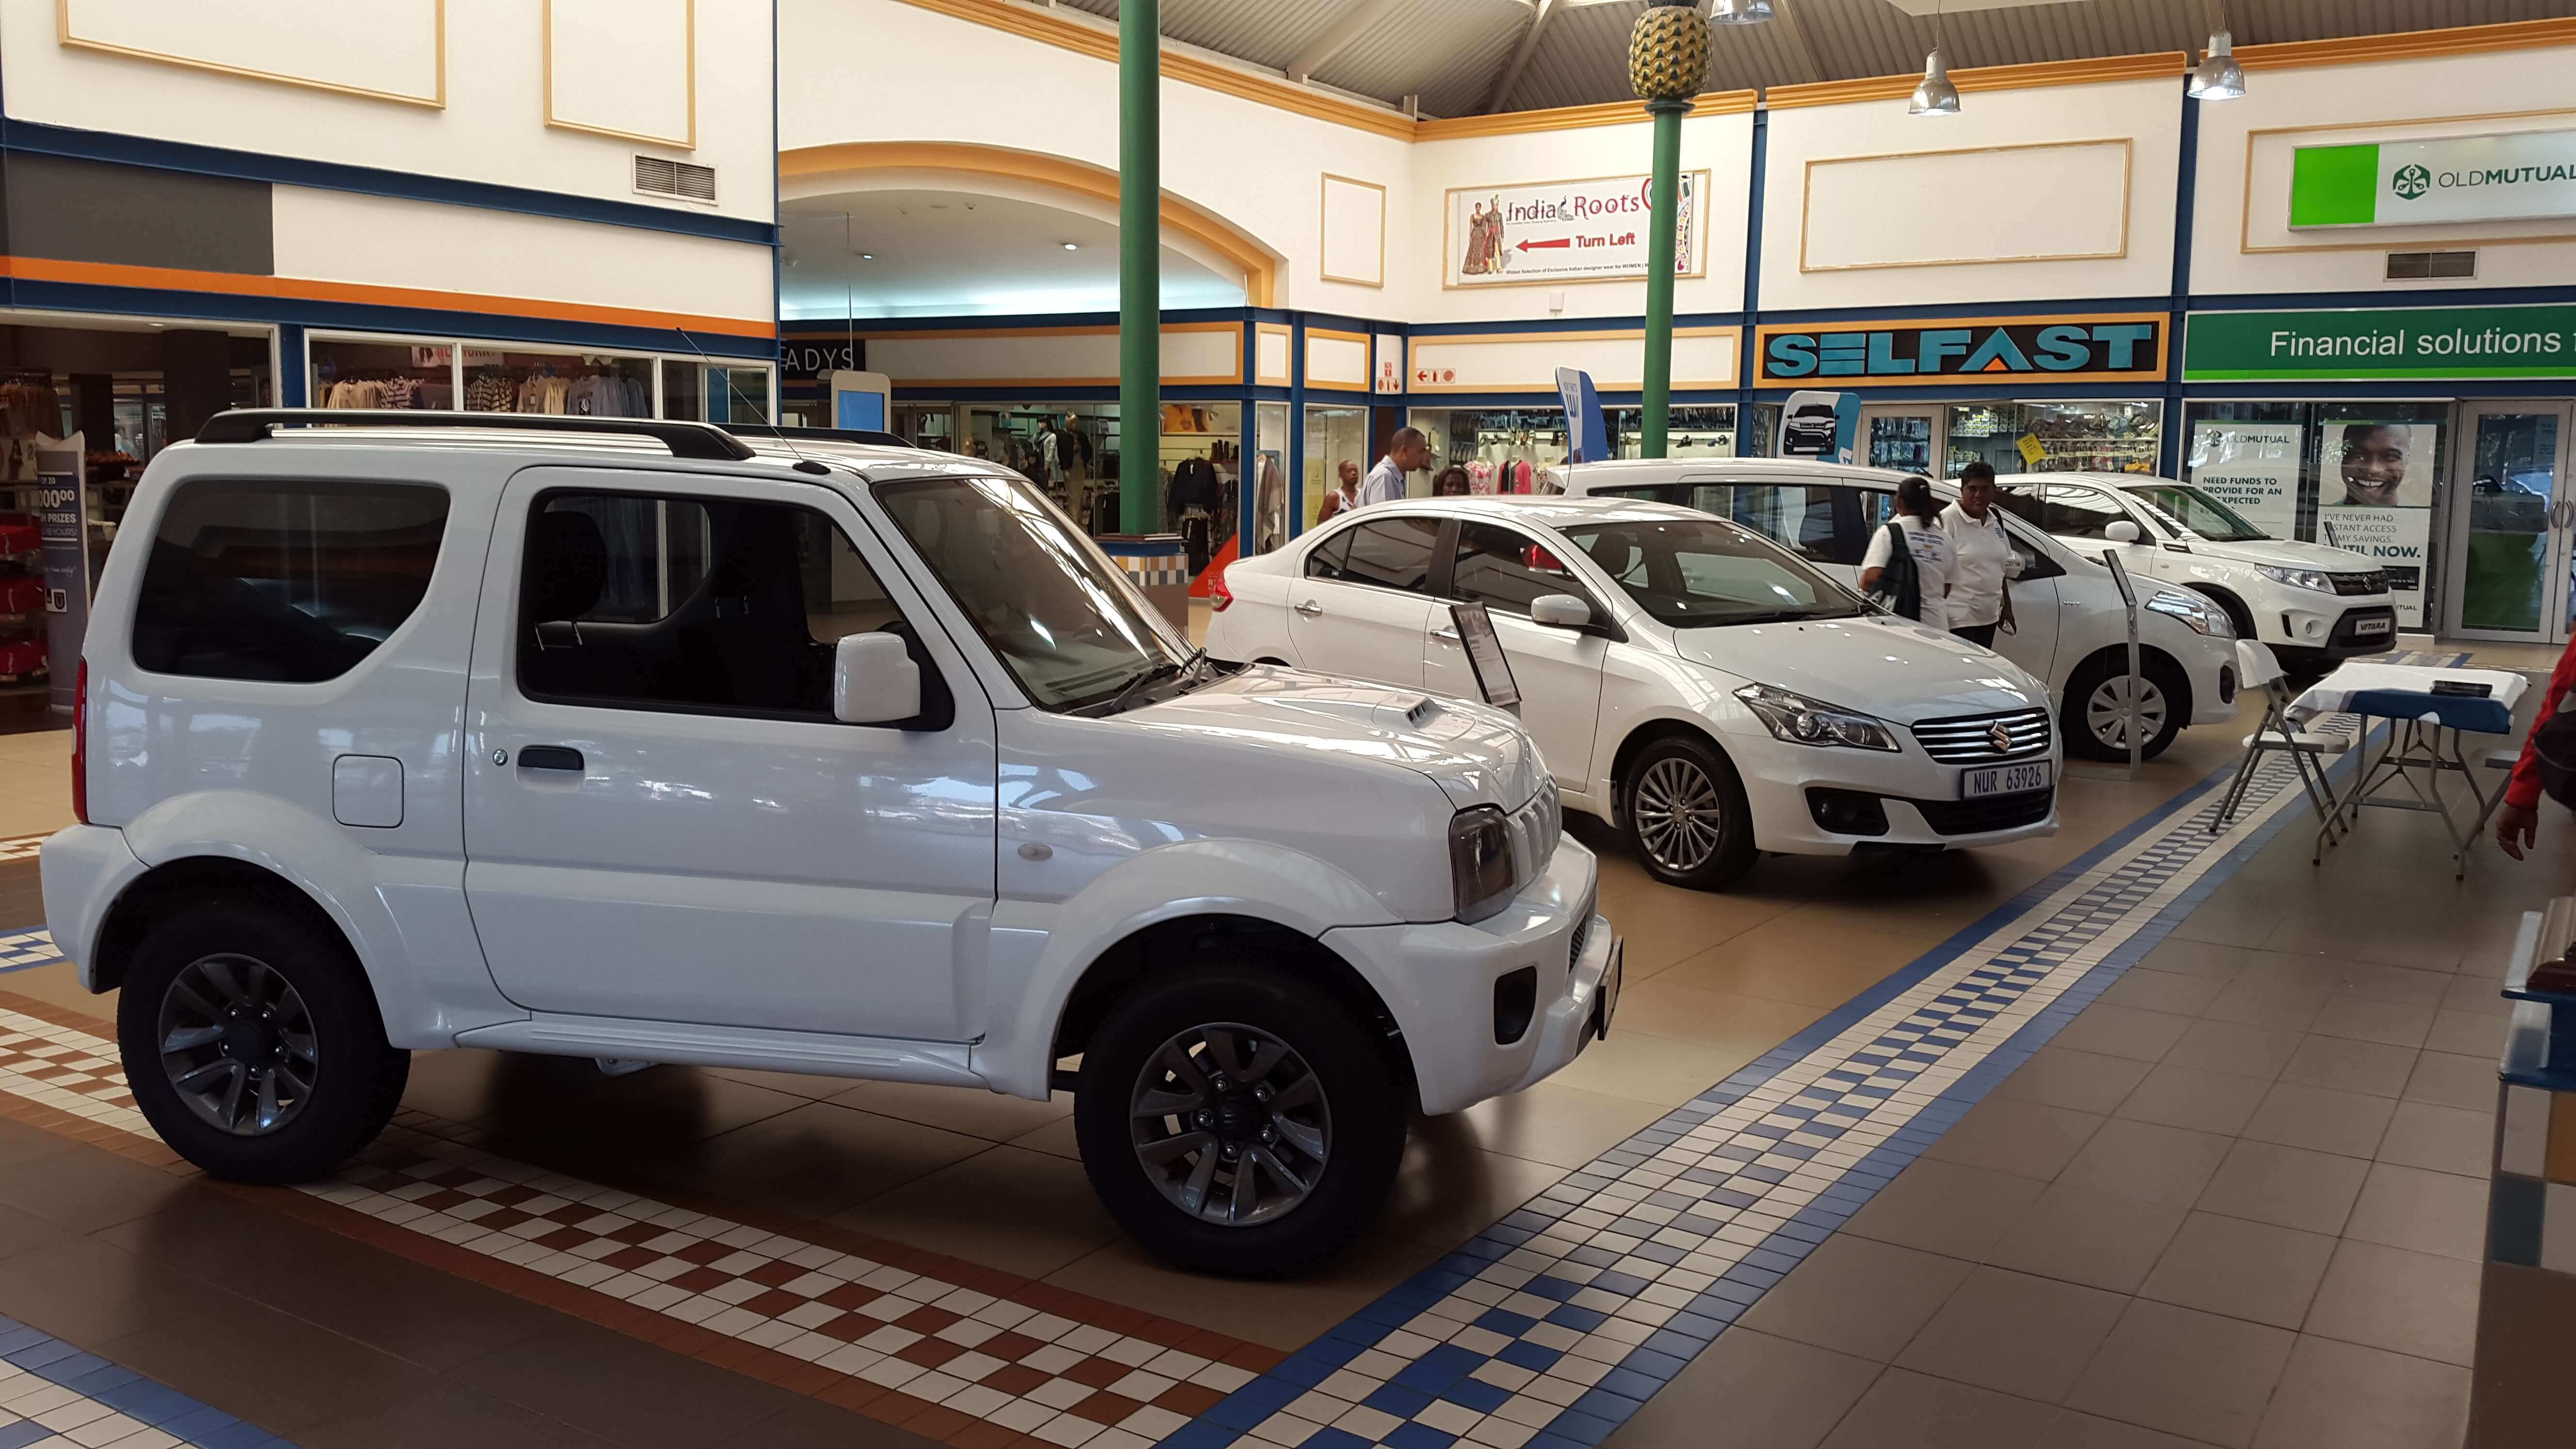 CMH Suzuki Phoenix Plaza Display